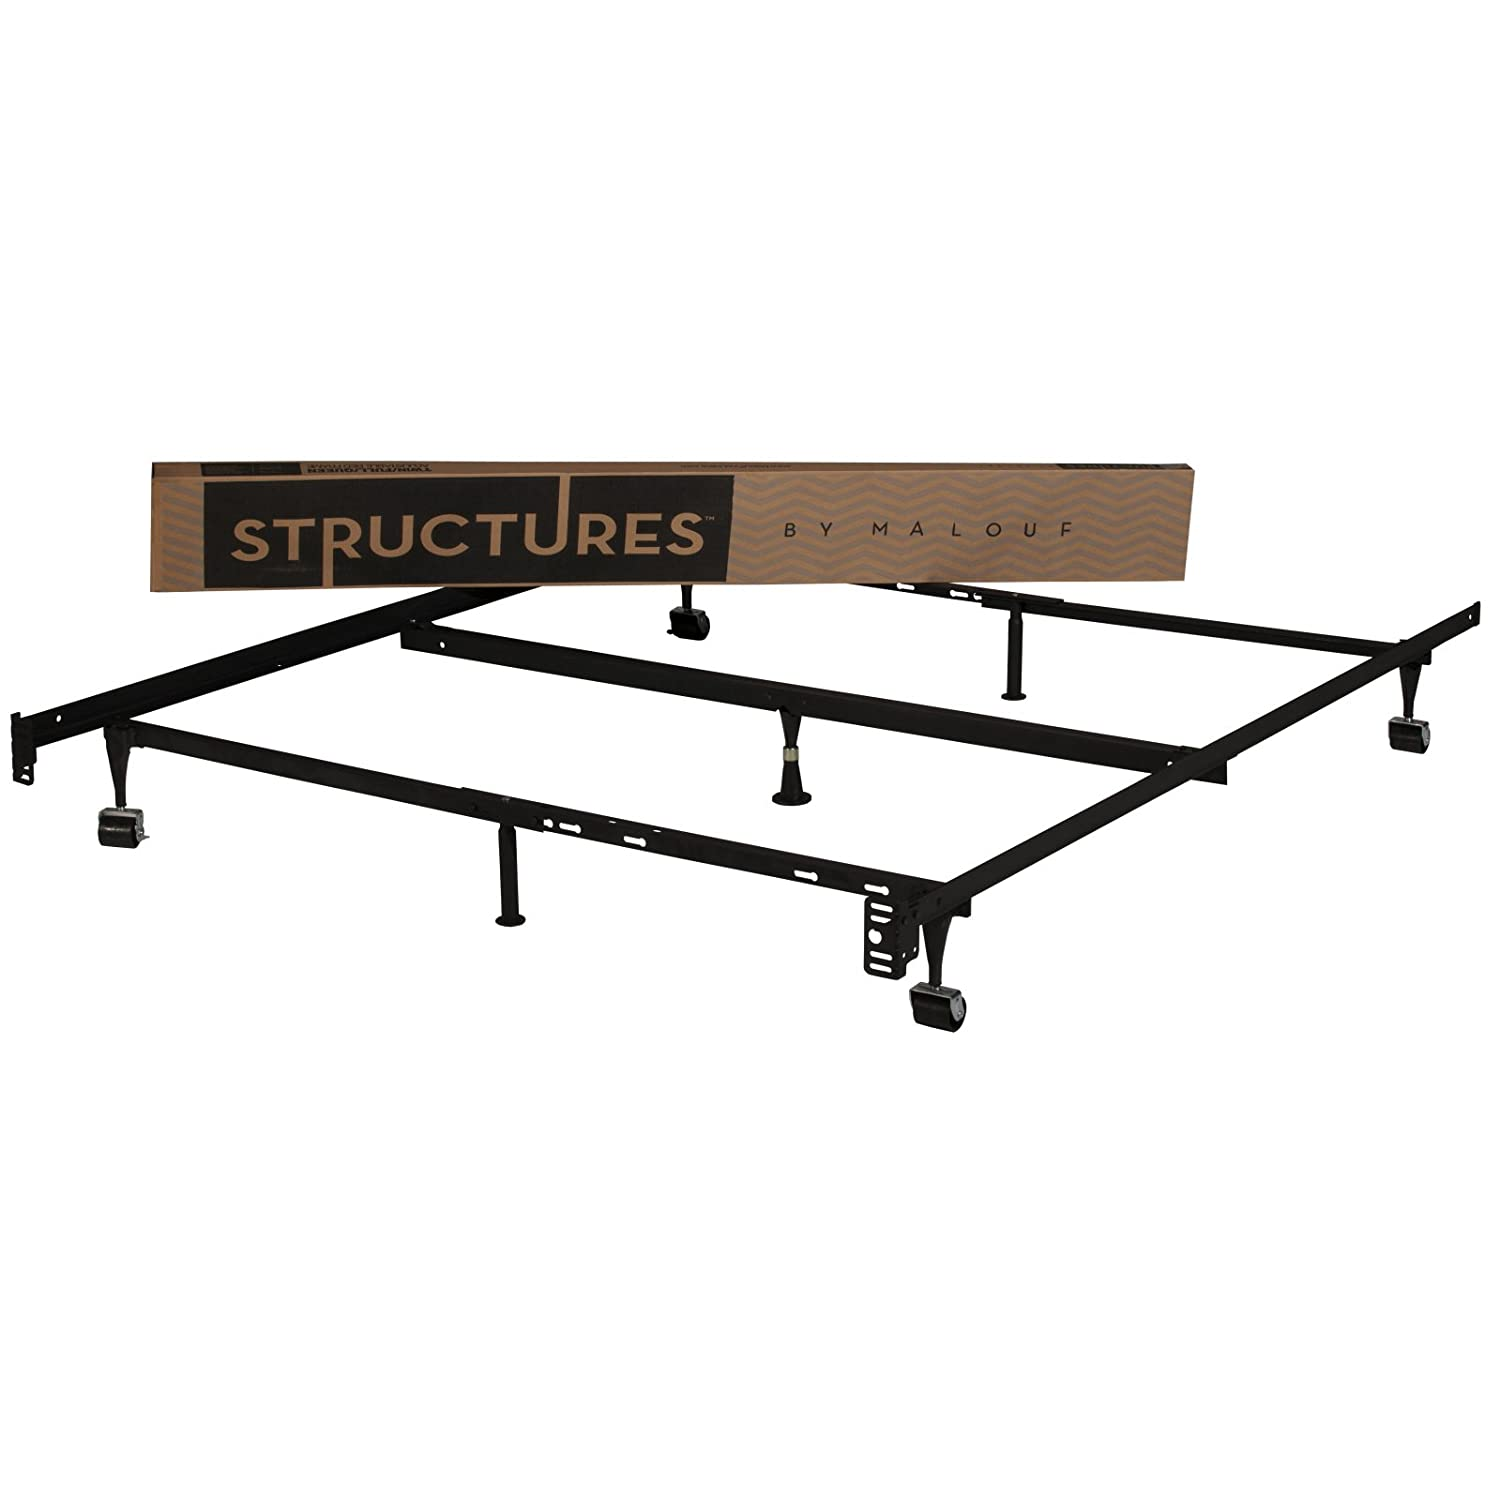 Structure twin xl metal bed frame with rug rollers home Metal bed frame twin